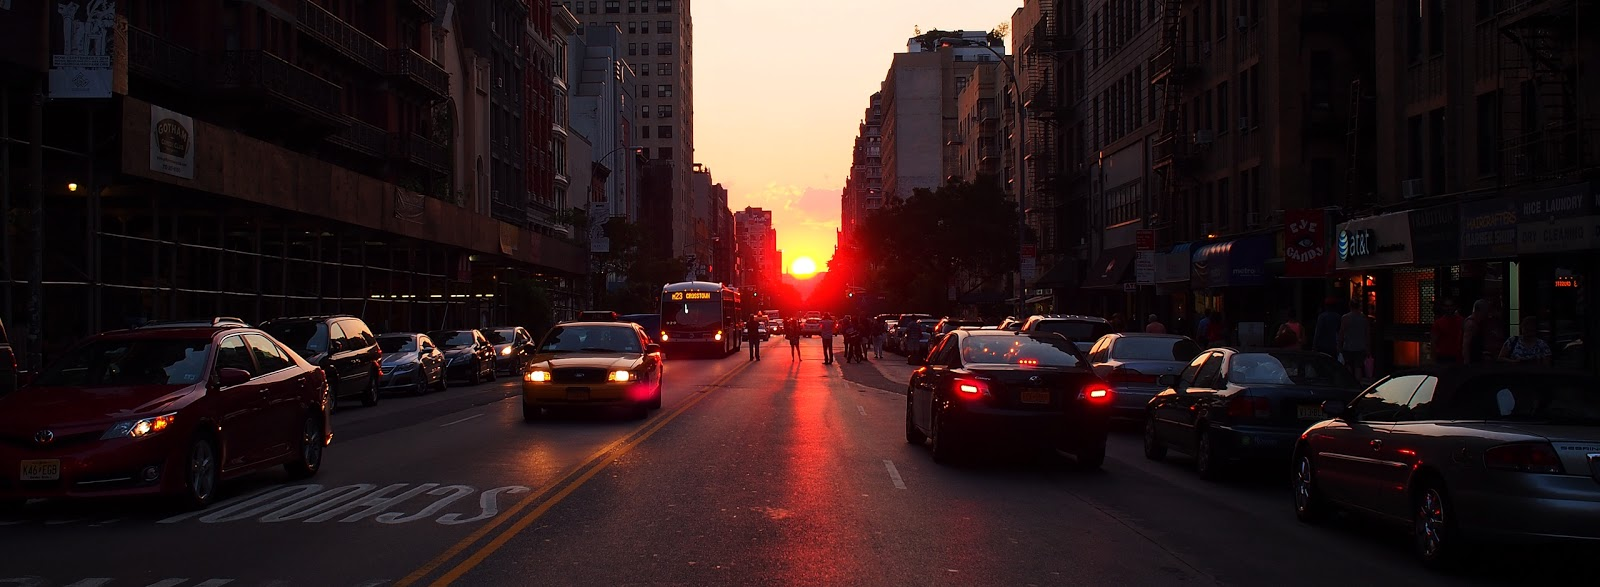 Manhattanhenge #manhattanhenge #nyc #sunset #midtown ©2014 Nancy Lundebjerg